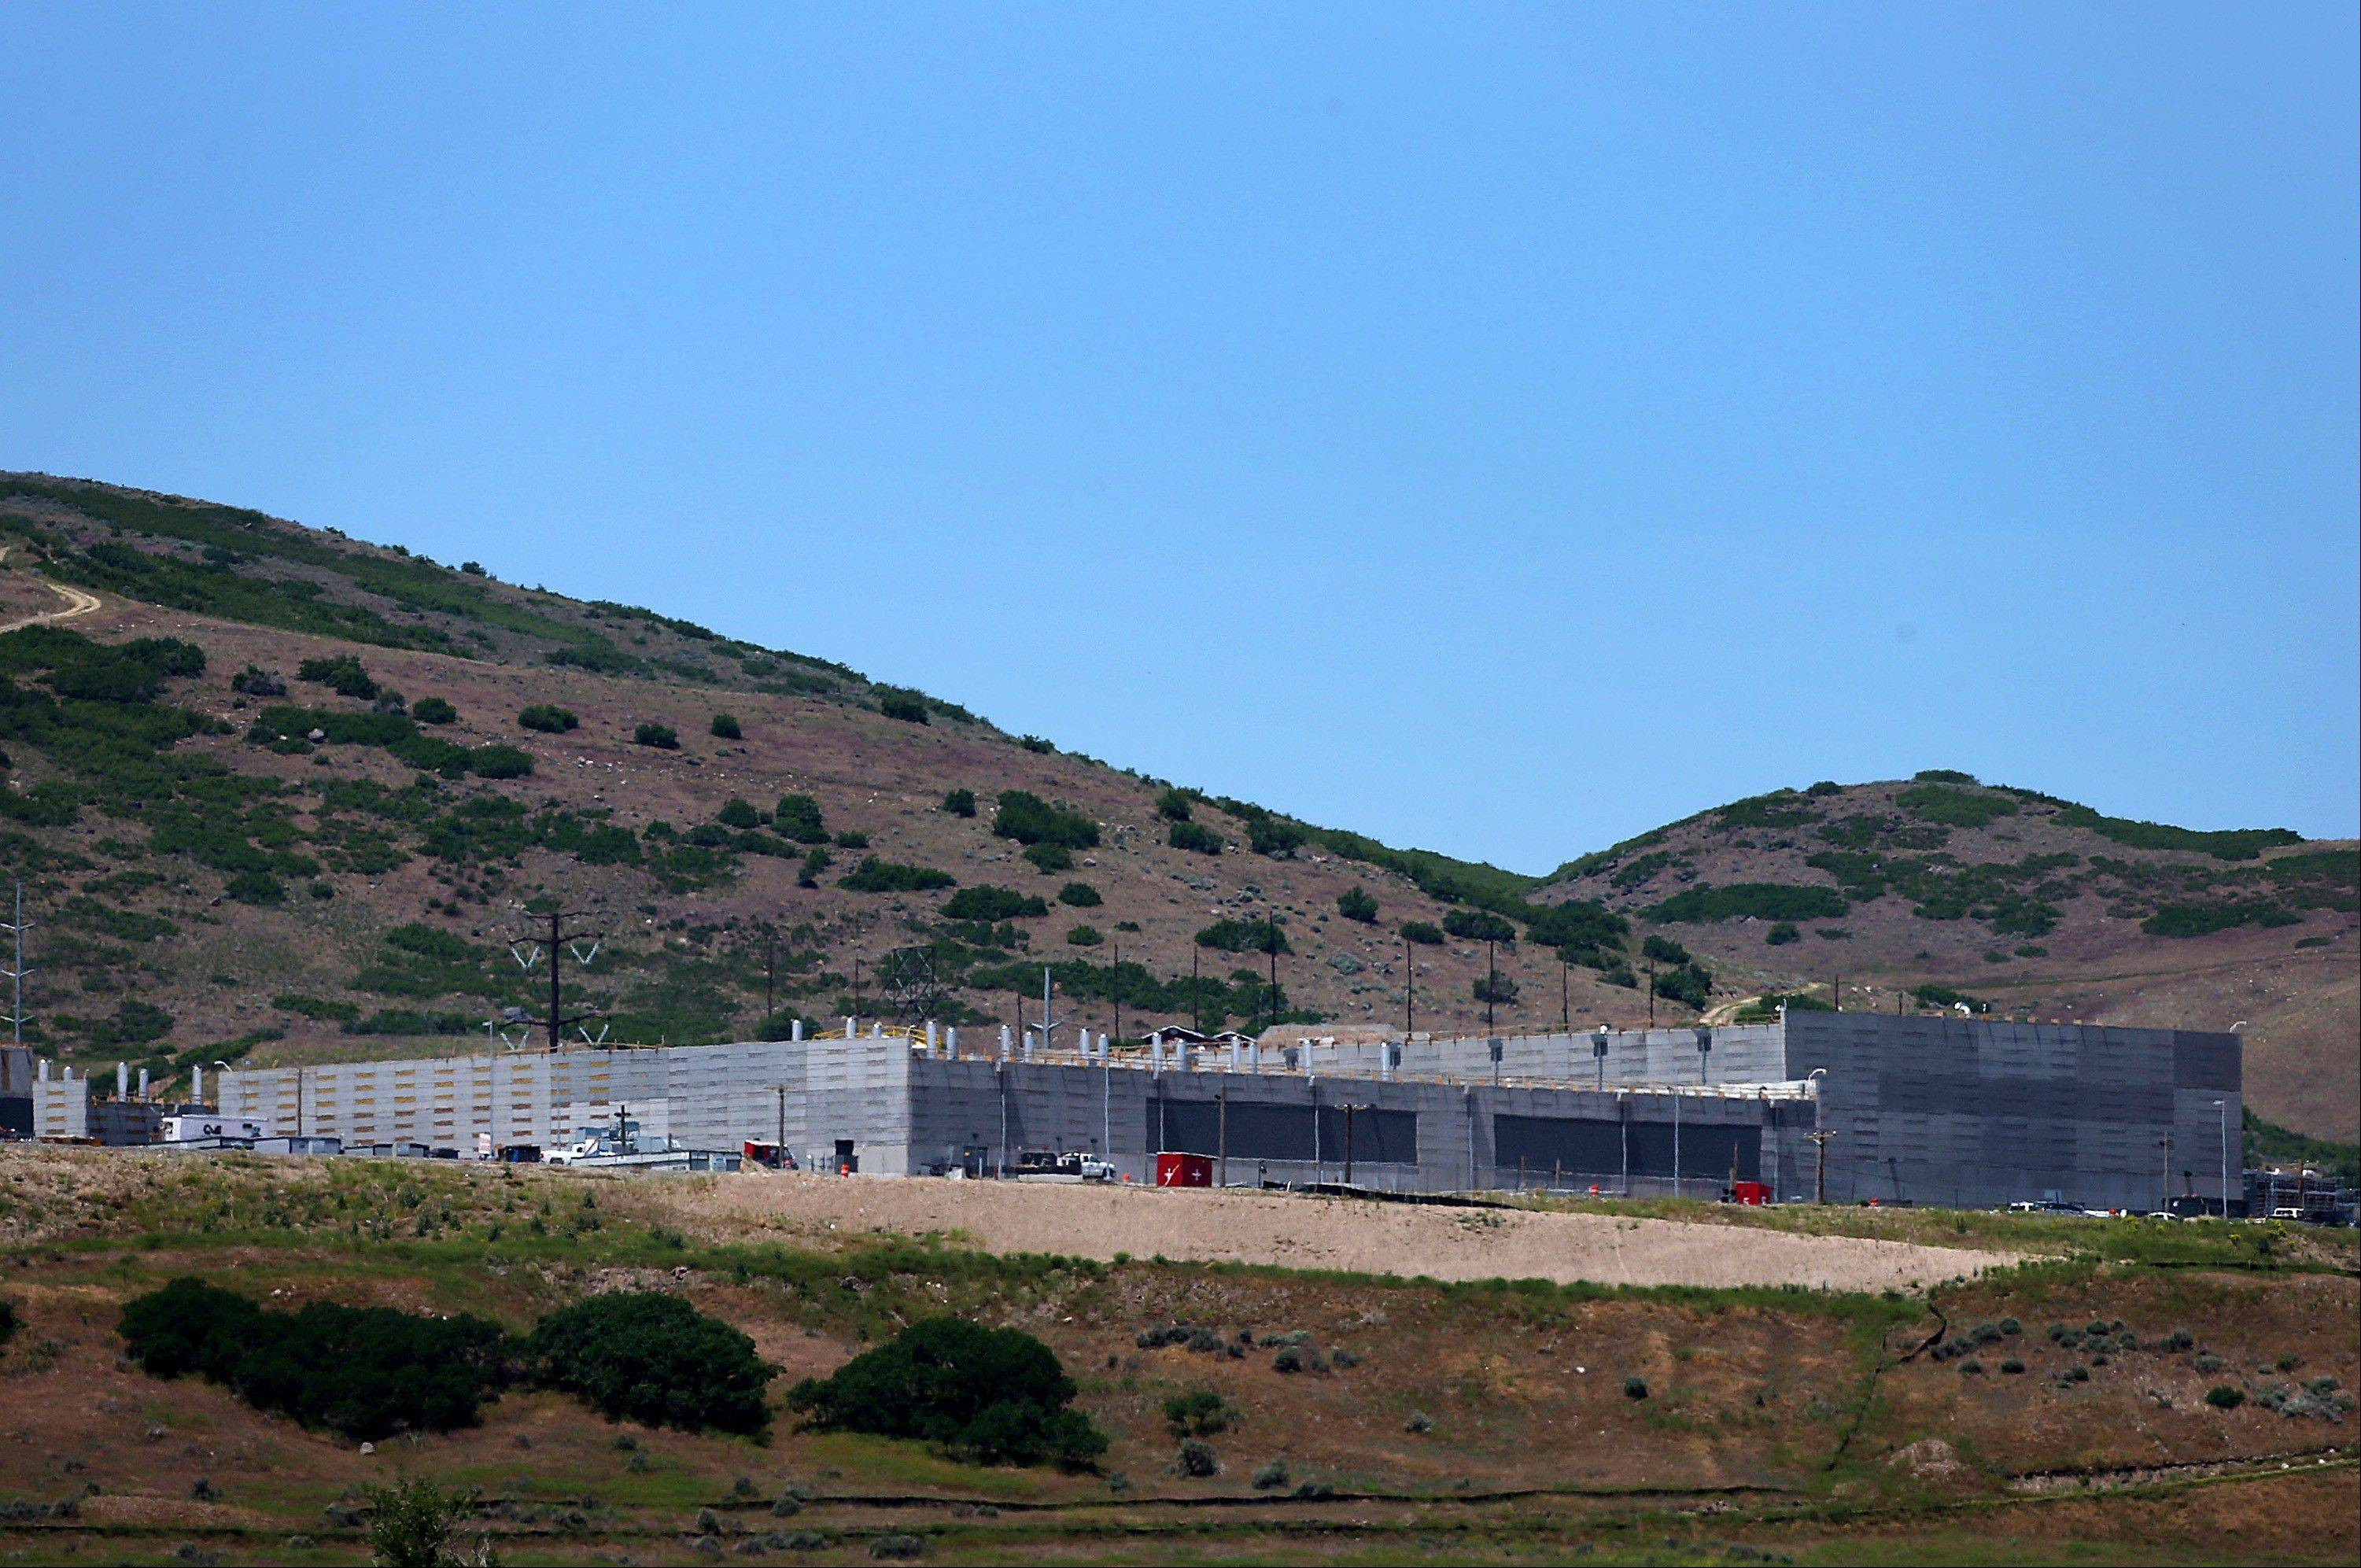 The National Security Agency (NSA) facility under construction in Bluffdale, Utah.